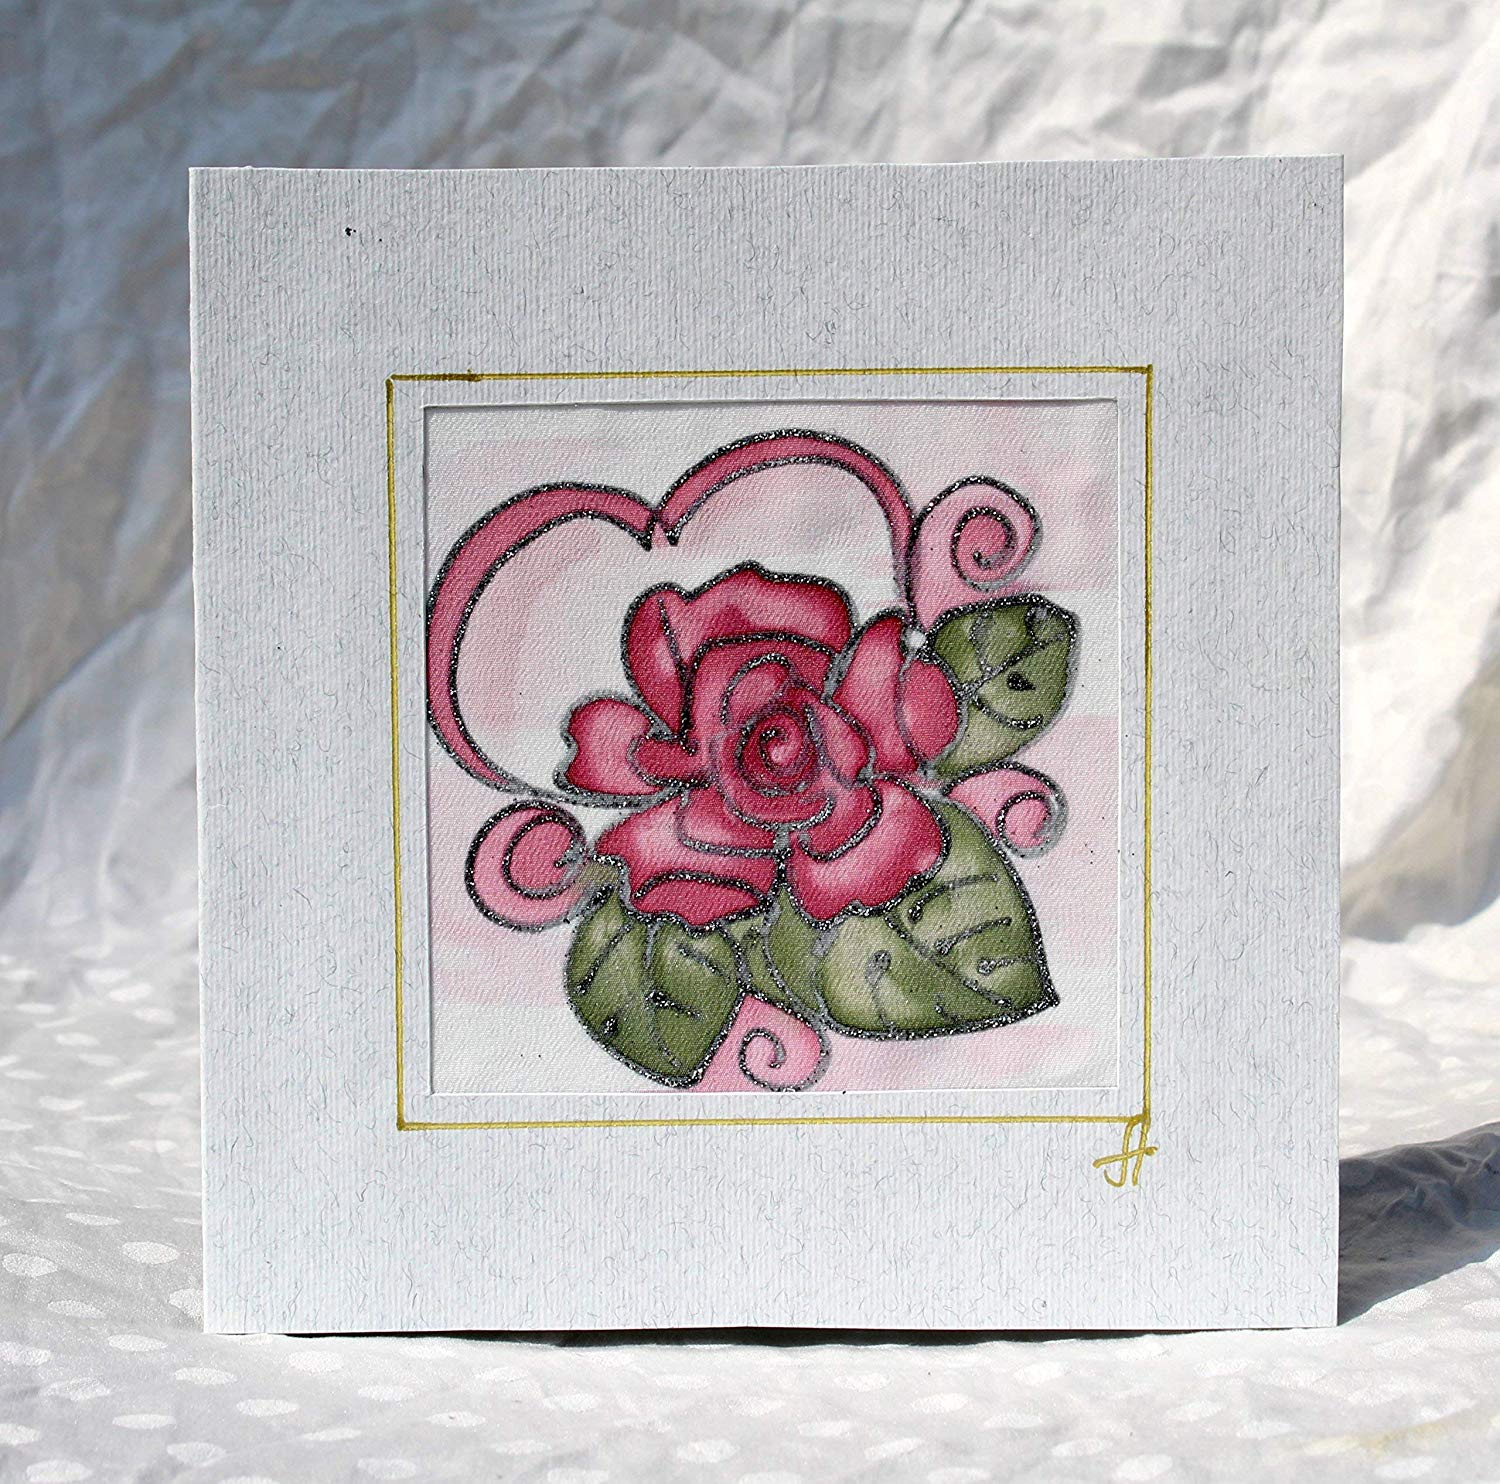 Personalized Red Rose,Rose Wedding Card,Unusual wedding card,Original Batik Greeting Card, Handpainted Rose Silk Card,Red Rose Greeting Card,Wedding Invitation.